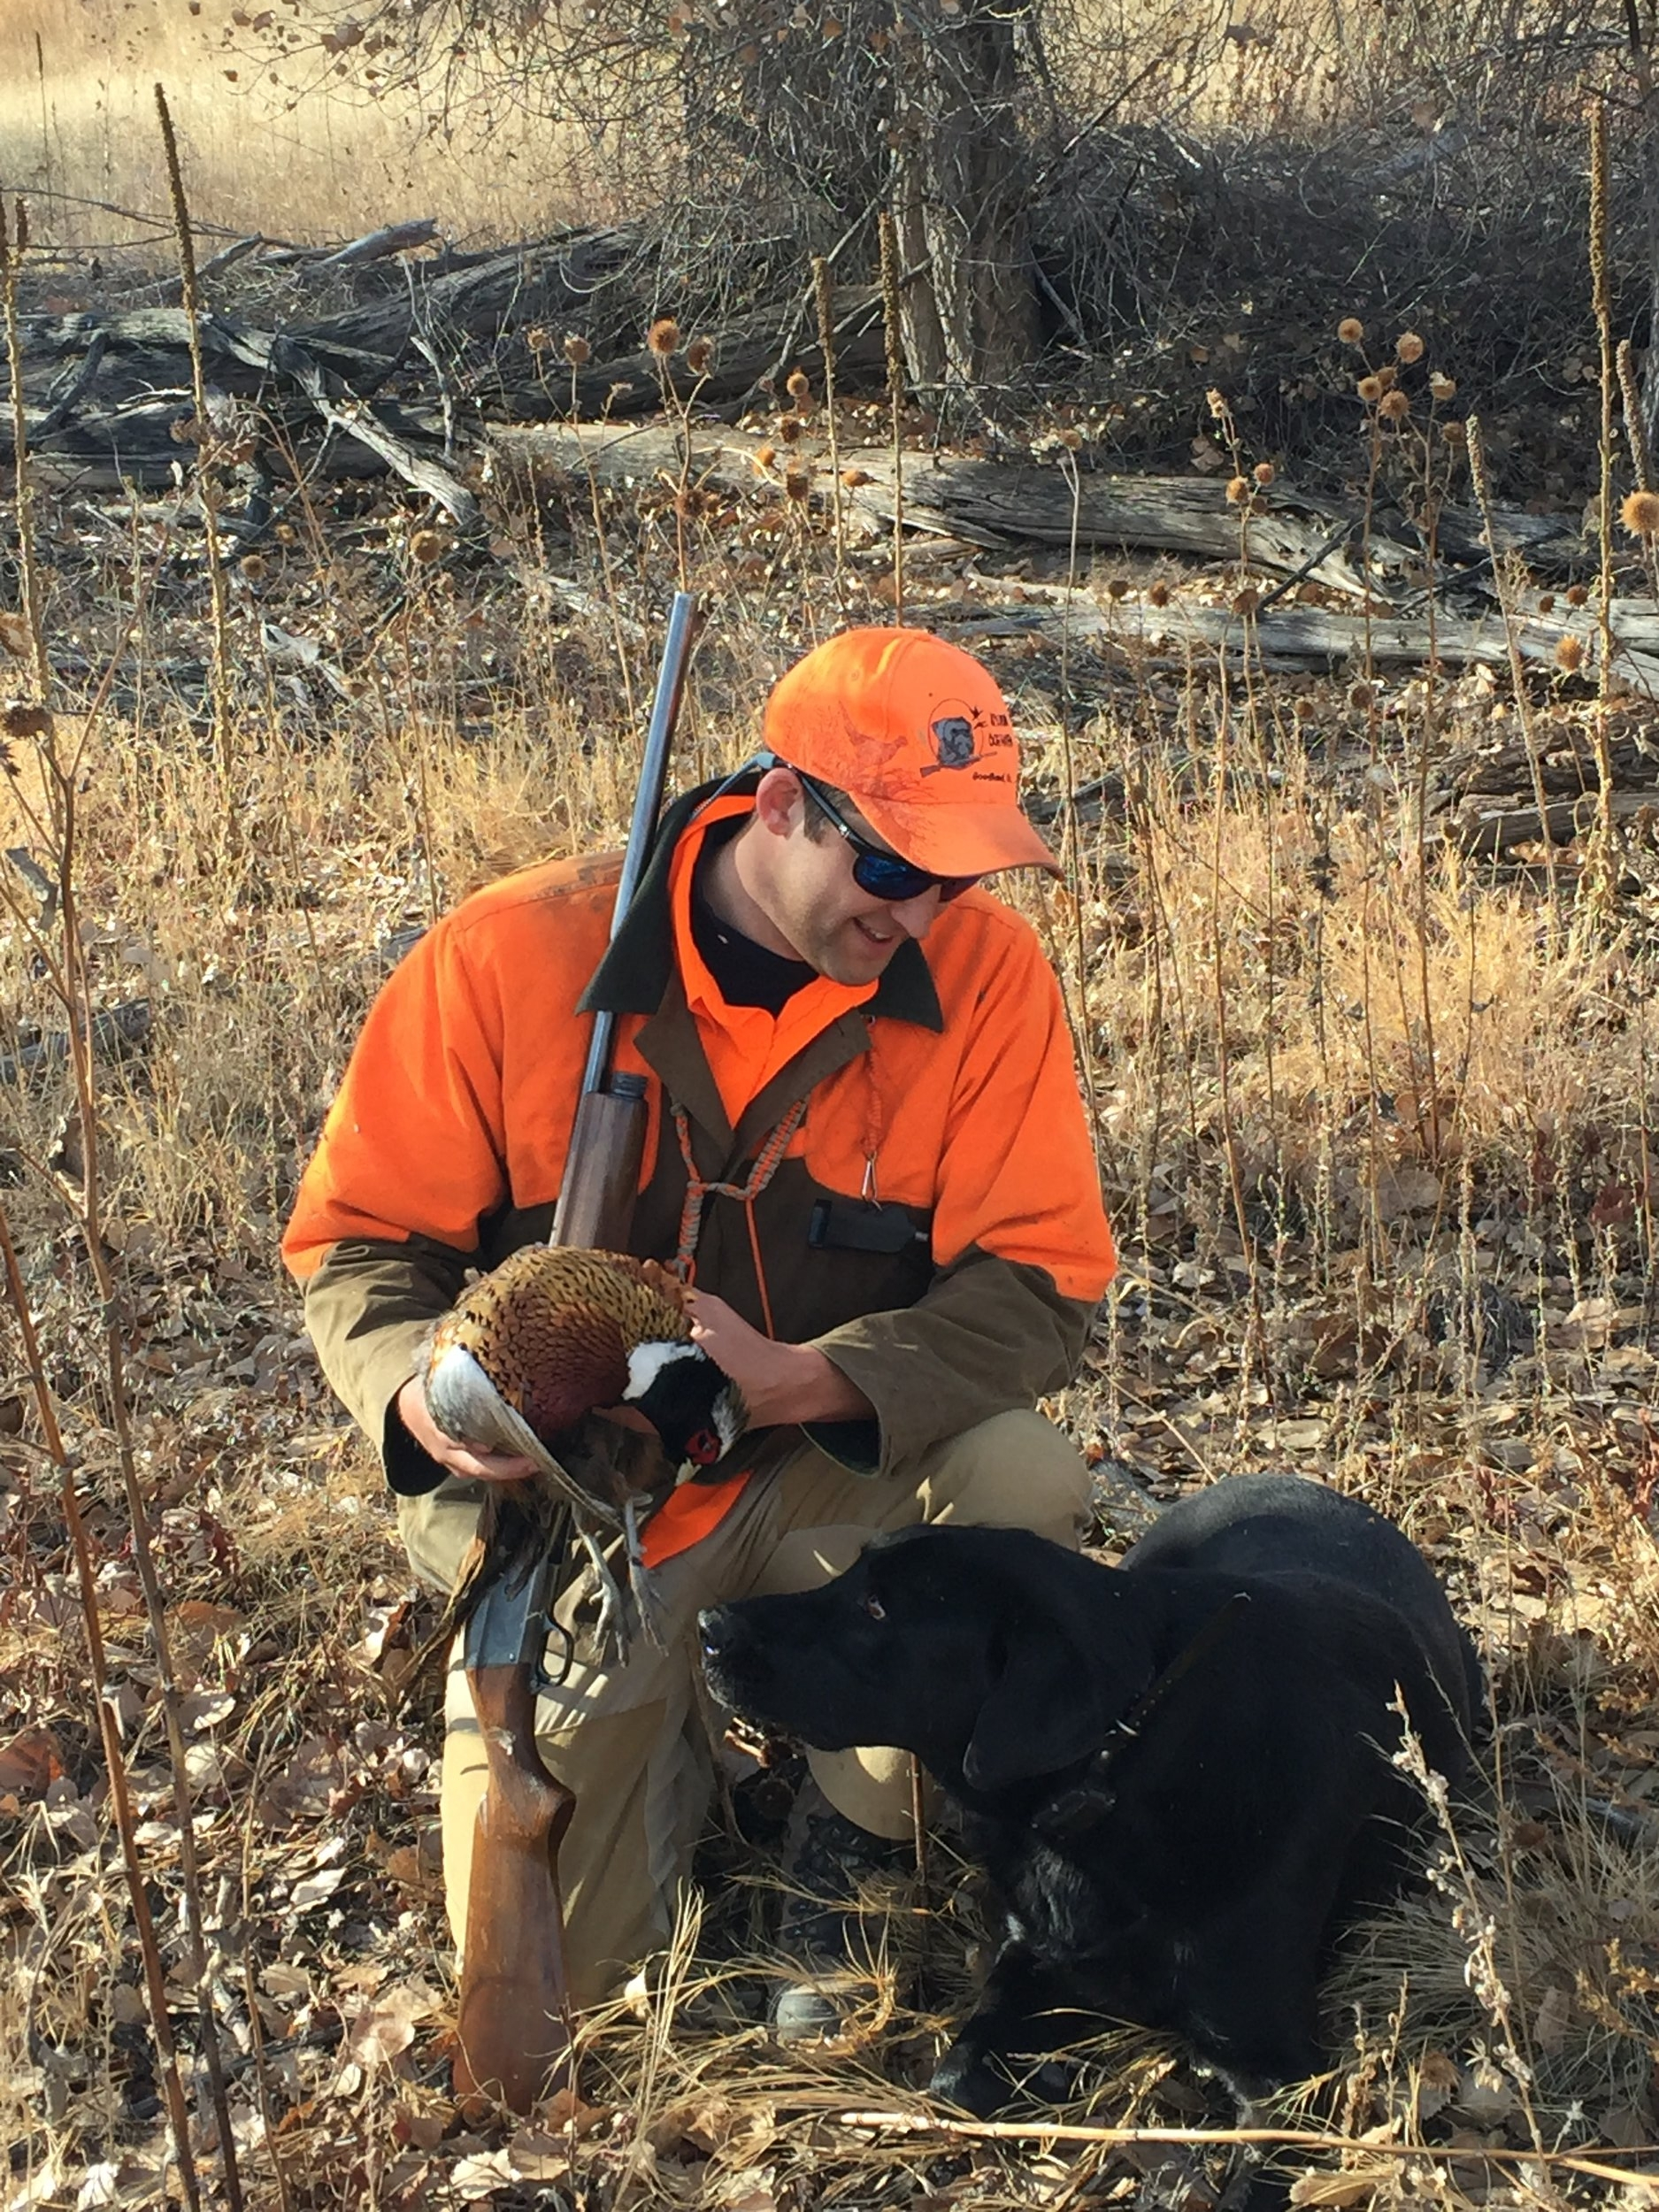 Nate Gilbert, Colorado Hunting Violation Attorney and Kansas Hunting Violation Attorney, grew up hunting and enjoying the outdoors, eventually dedicating a large portion of his professional practice to understanding the intricacies of Colorado and Kansas Hunting Law.